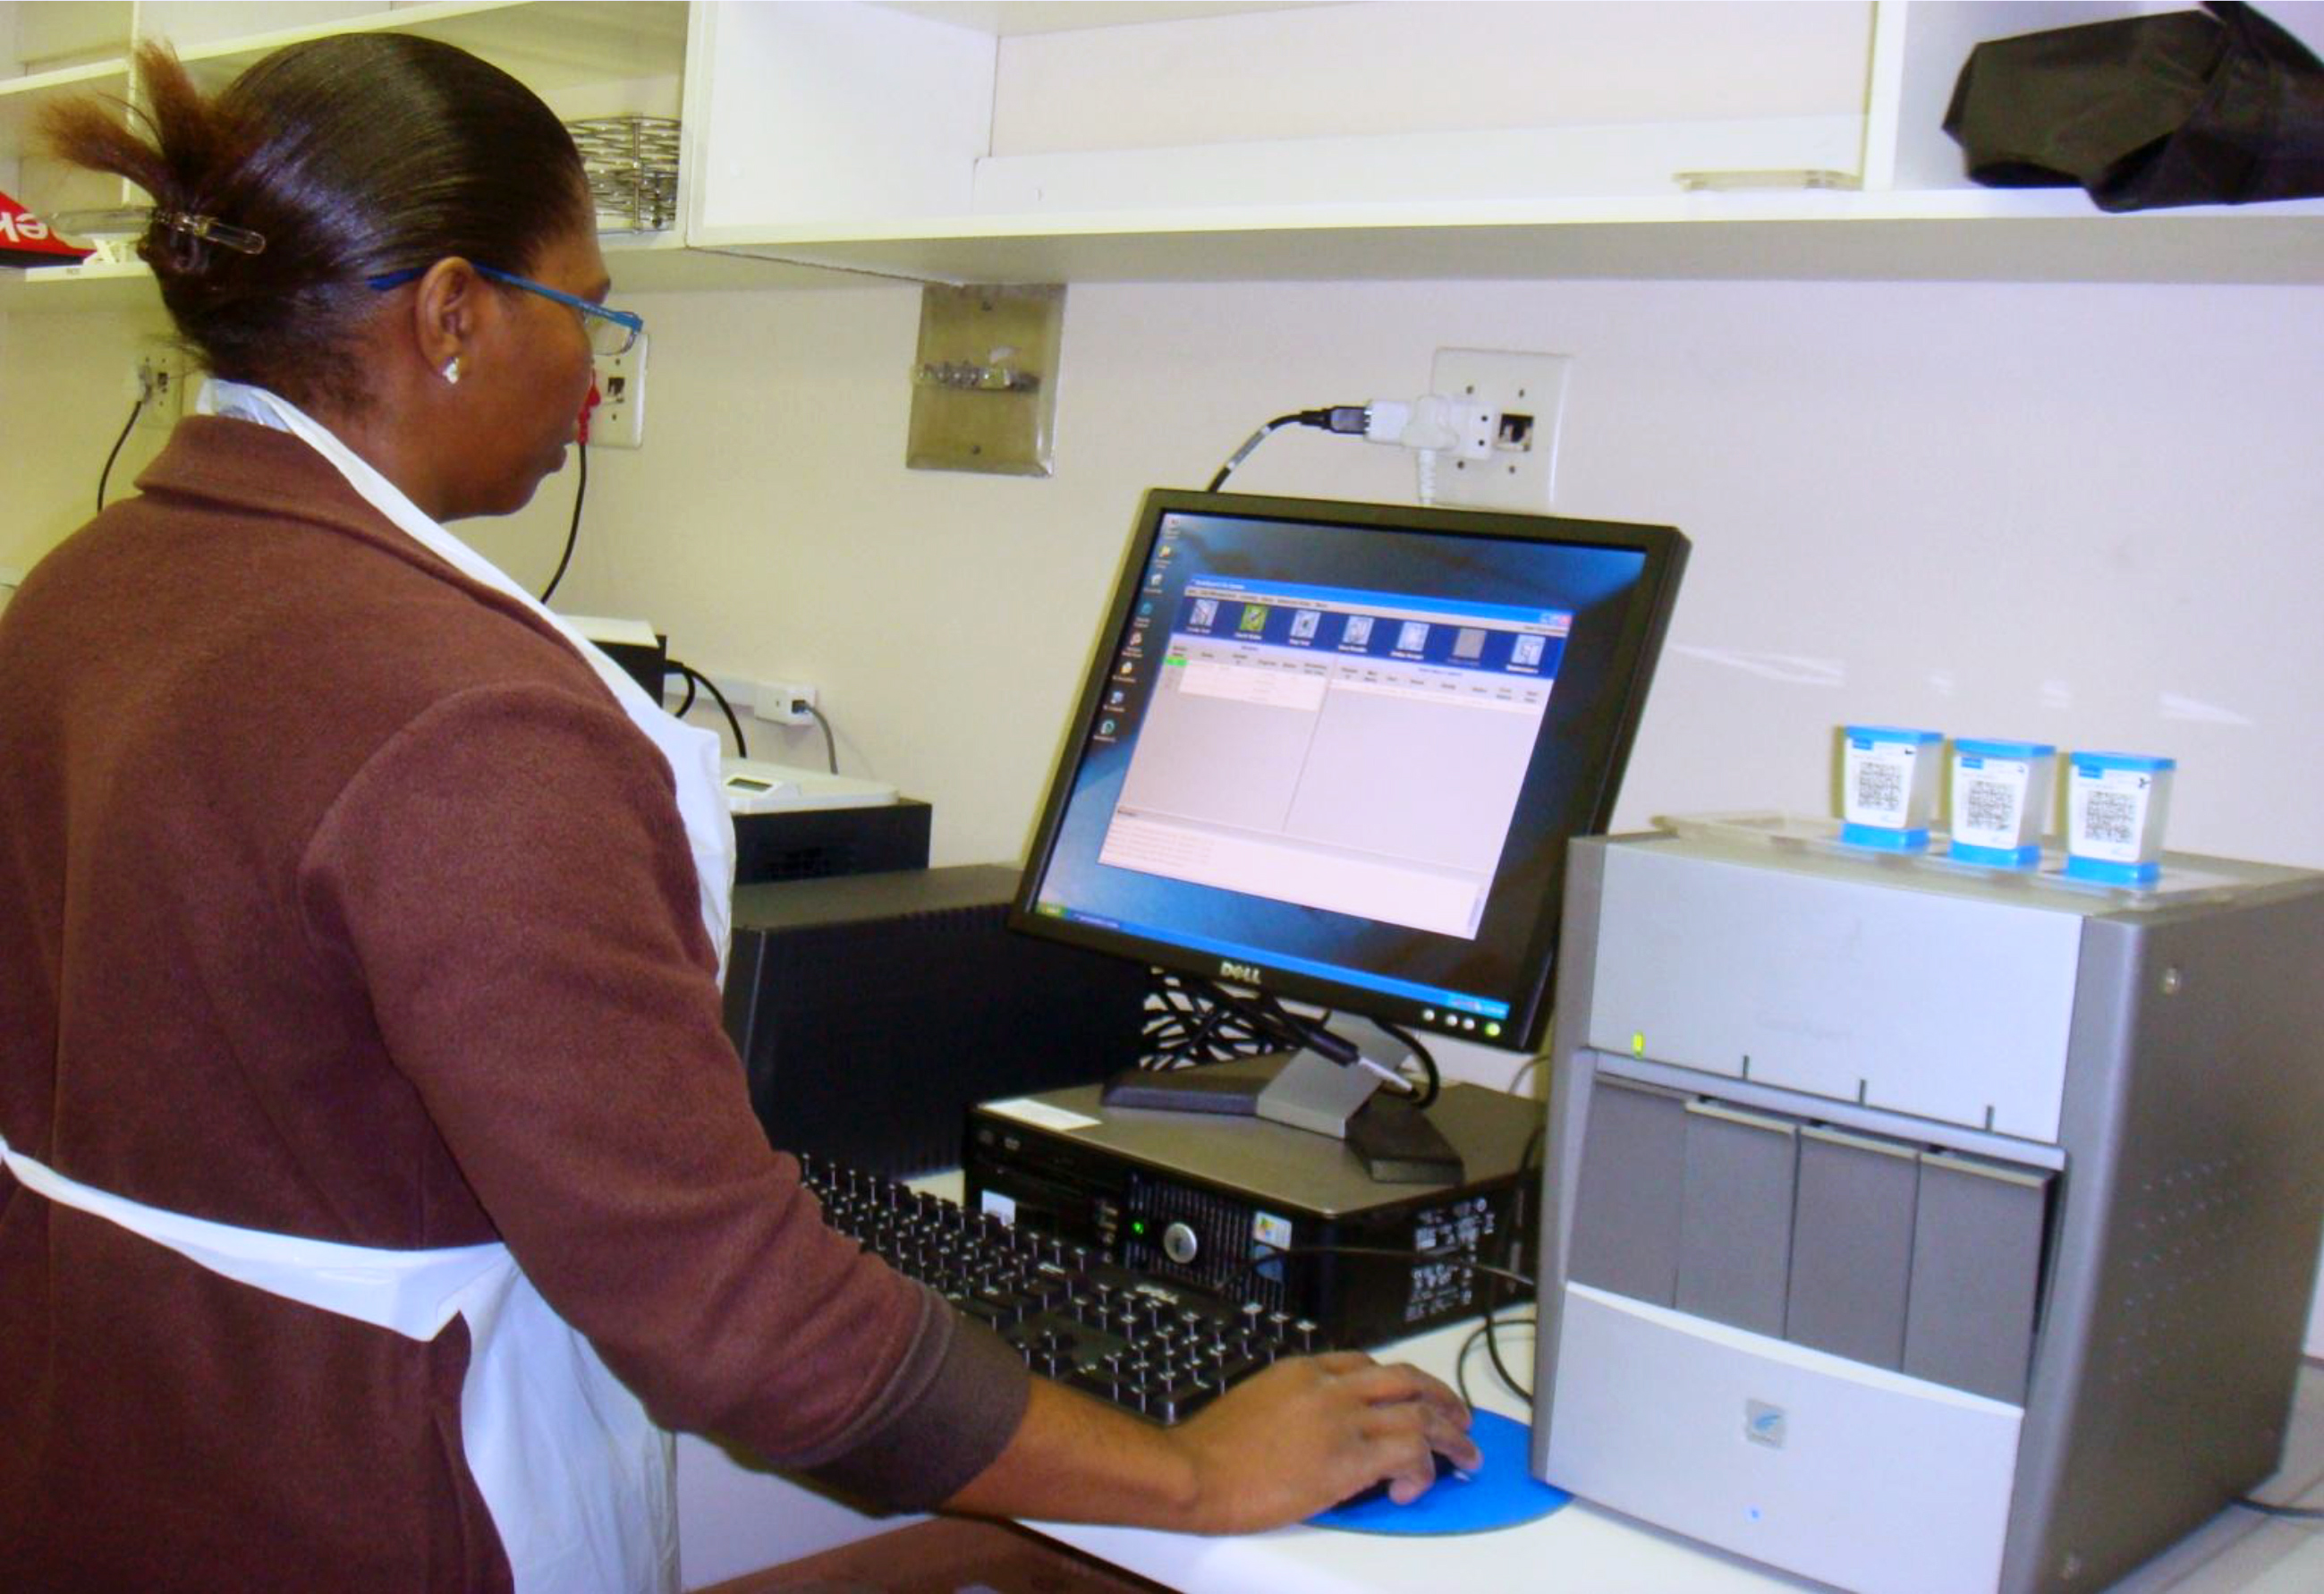 Laboratory staff in South Africa